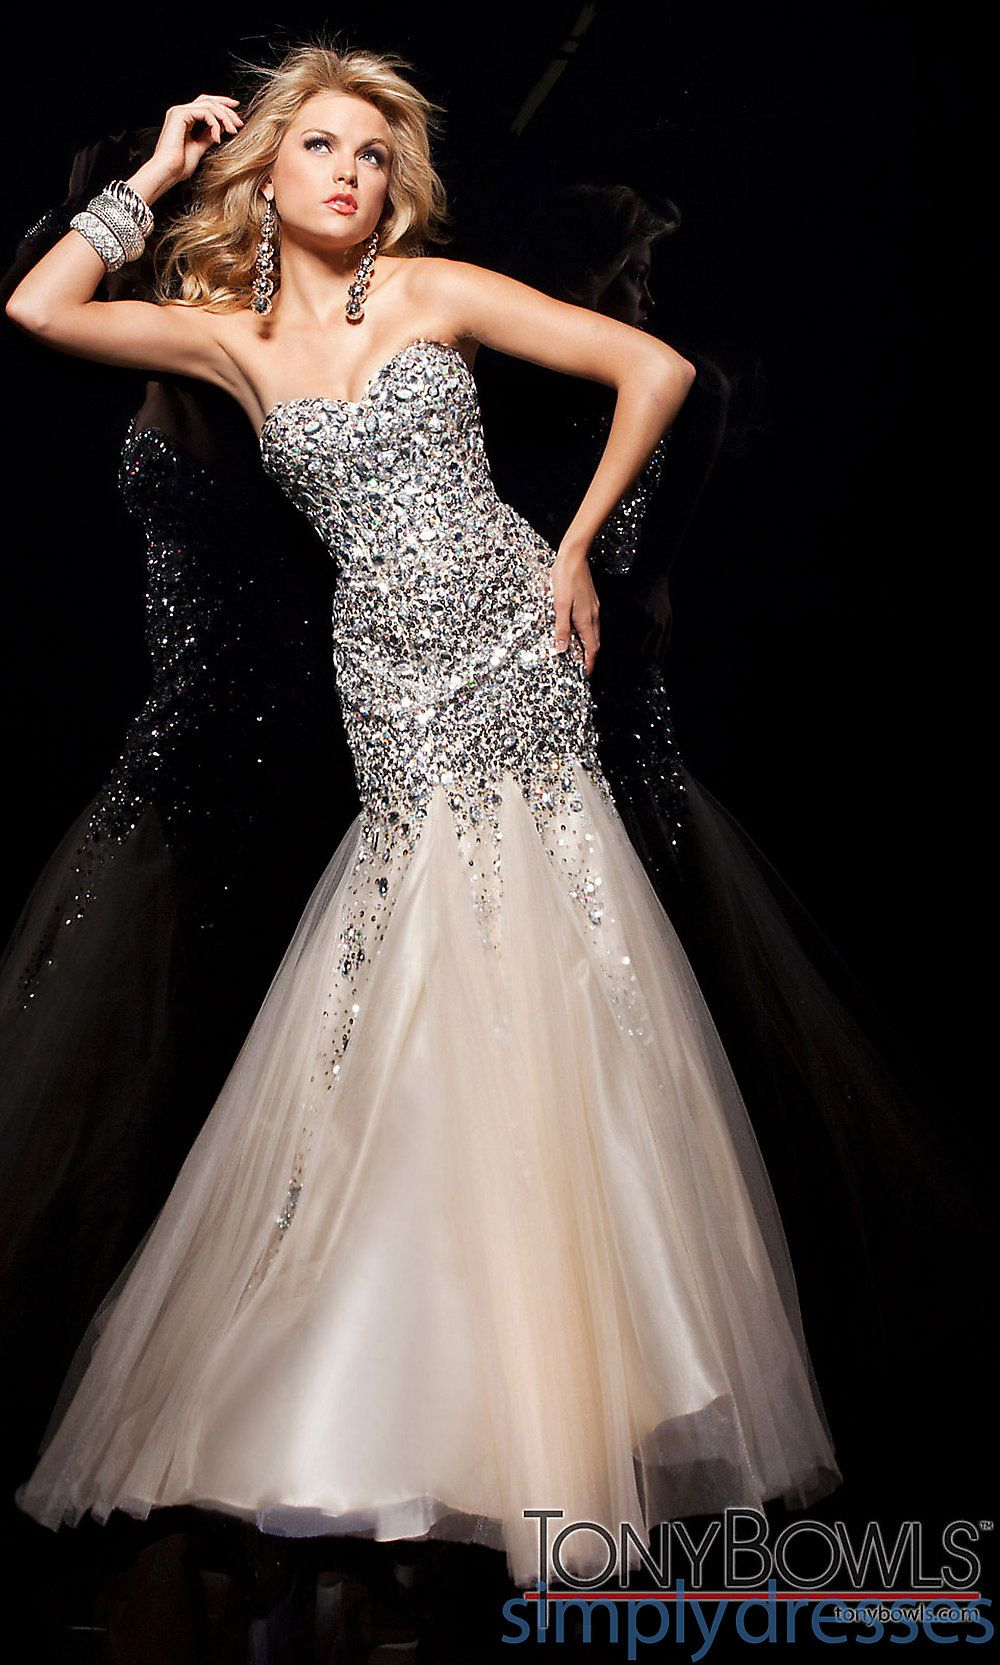 Gold Sequin Mermaid Gown By Tony Bowls Champagne Prom Dress Mermaid Prom Dresses Mermaid Prom Dresses [ 1665 x 1000 Pixel ]